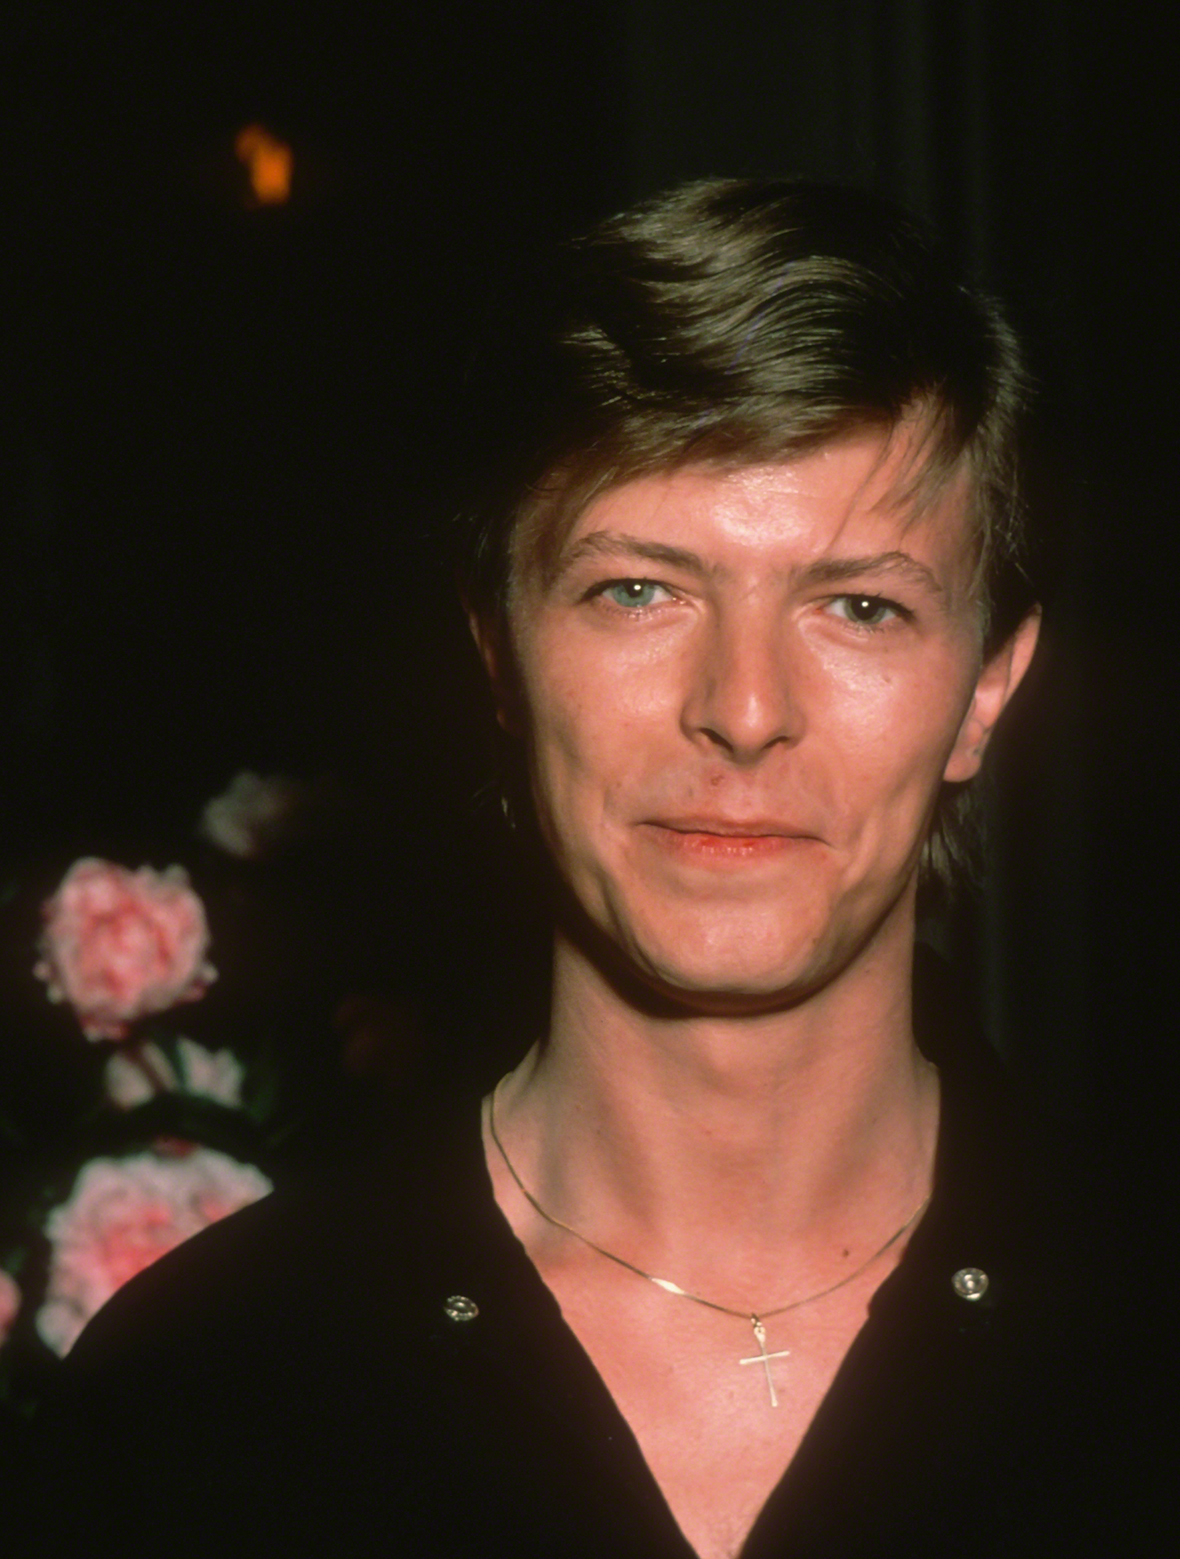 David Bowie is dead at 69.